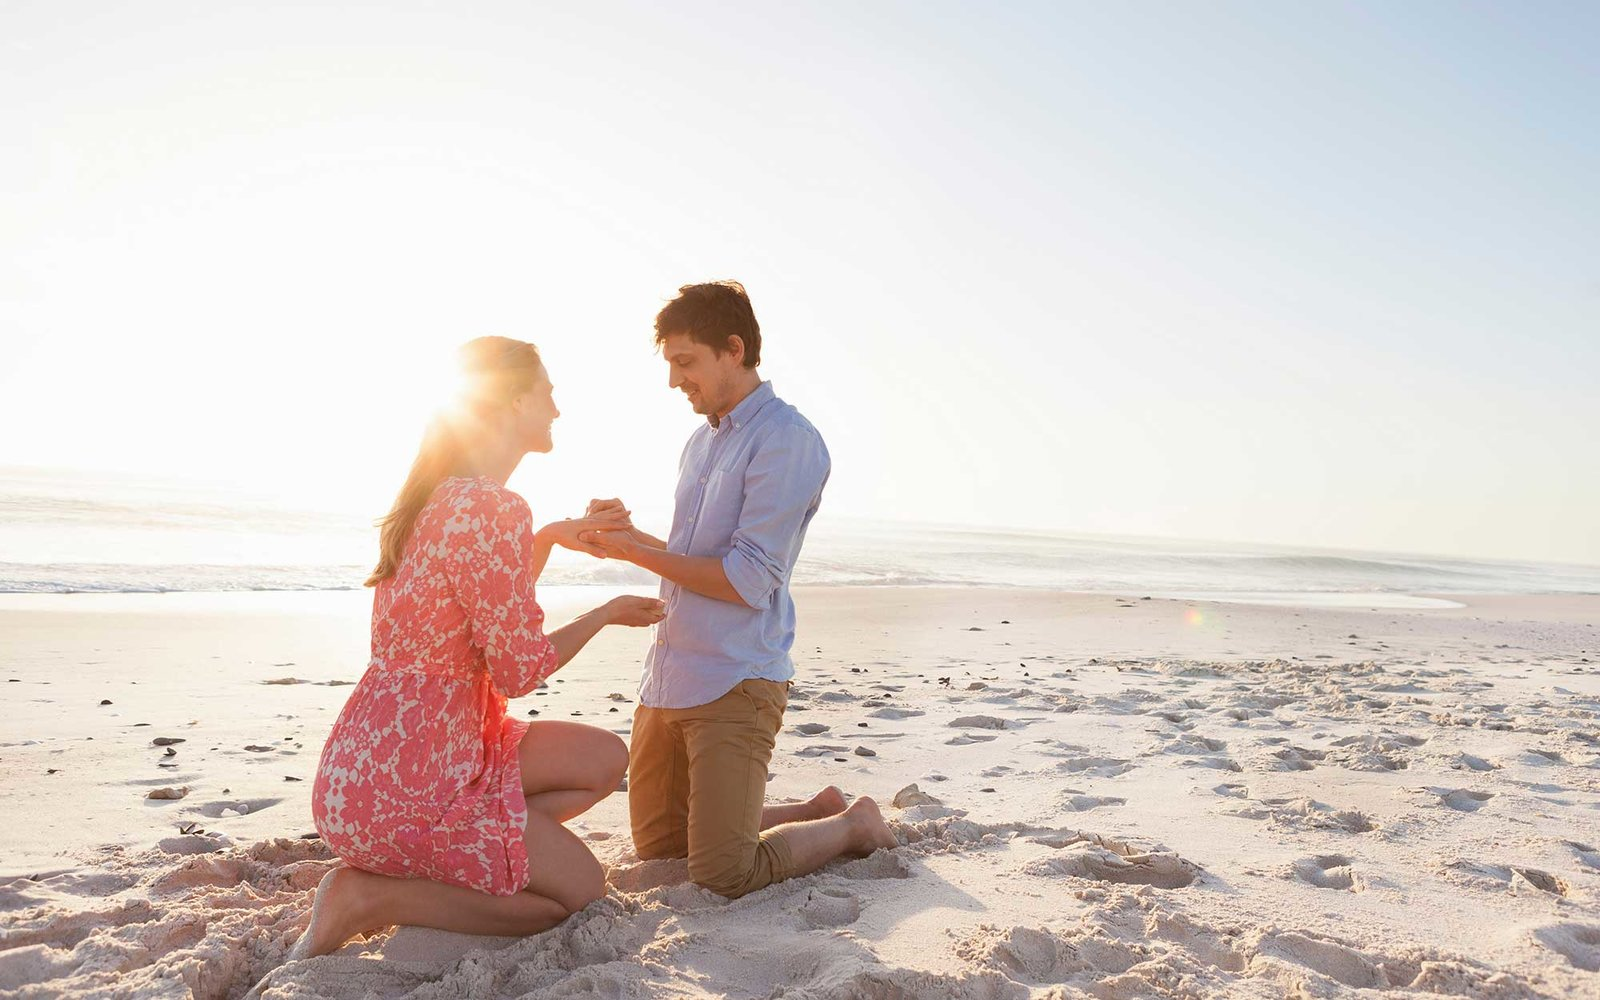 Boy Proposing Girl Hd Wallpaper How To Travel With An Engagement Ring Travel Leisure